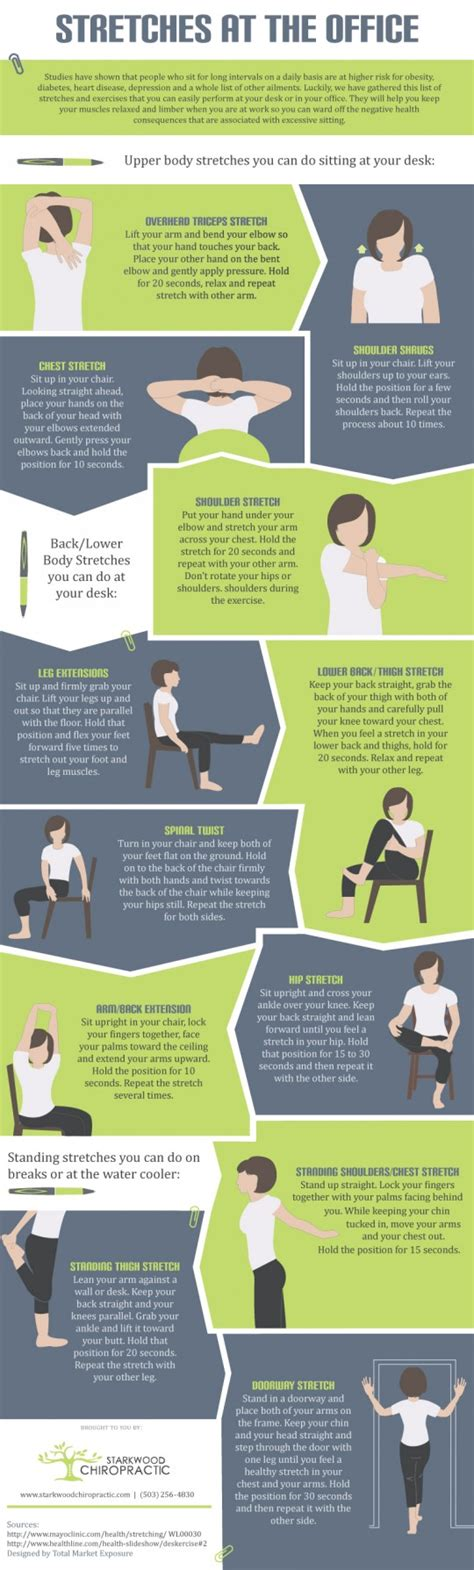 stretch at your desk 12 stretch exercises you can do at your desk infographic